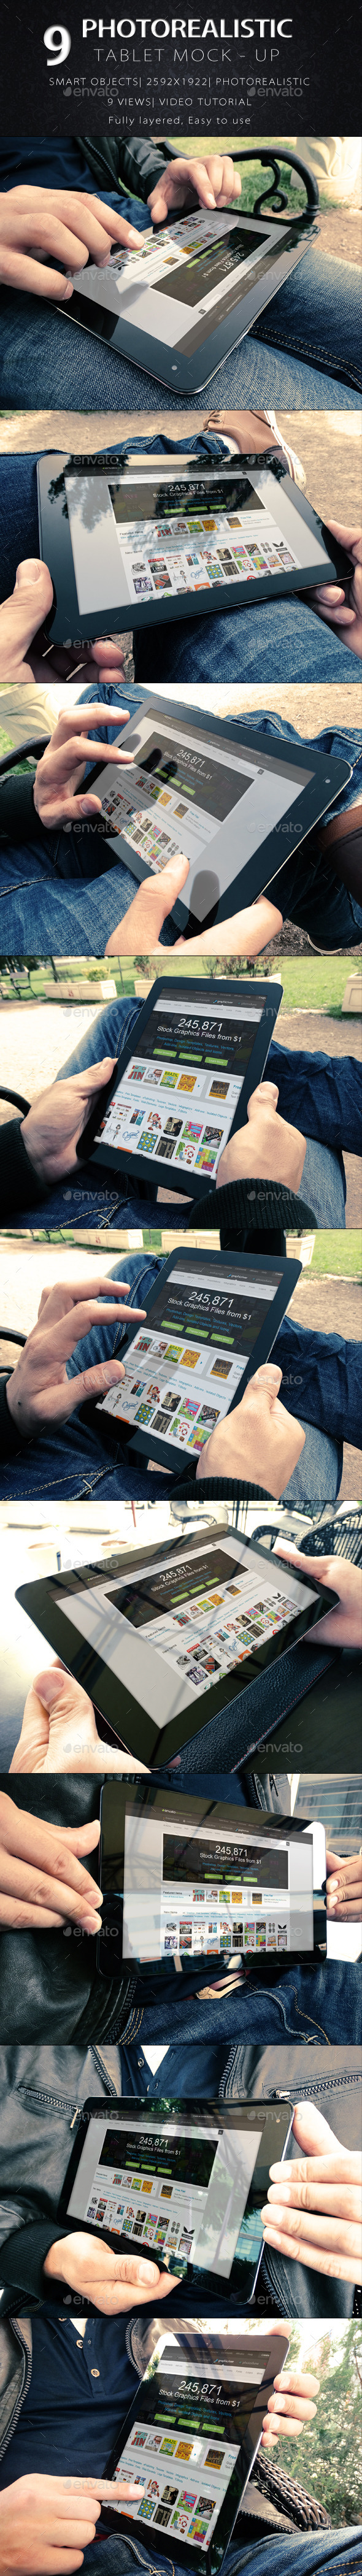 9 Photorealistic Tablet With Hands Mock-Up V2 - Mobile Displays